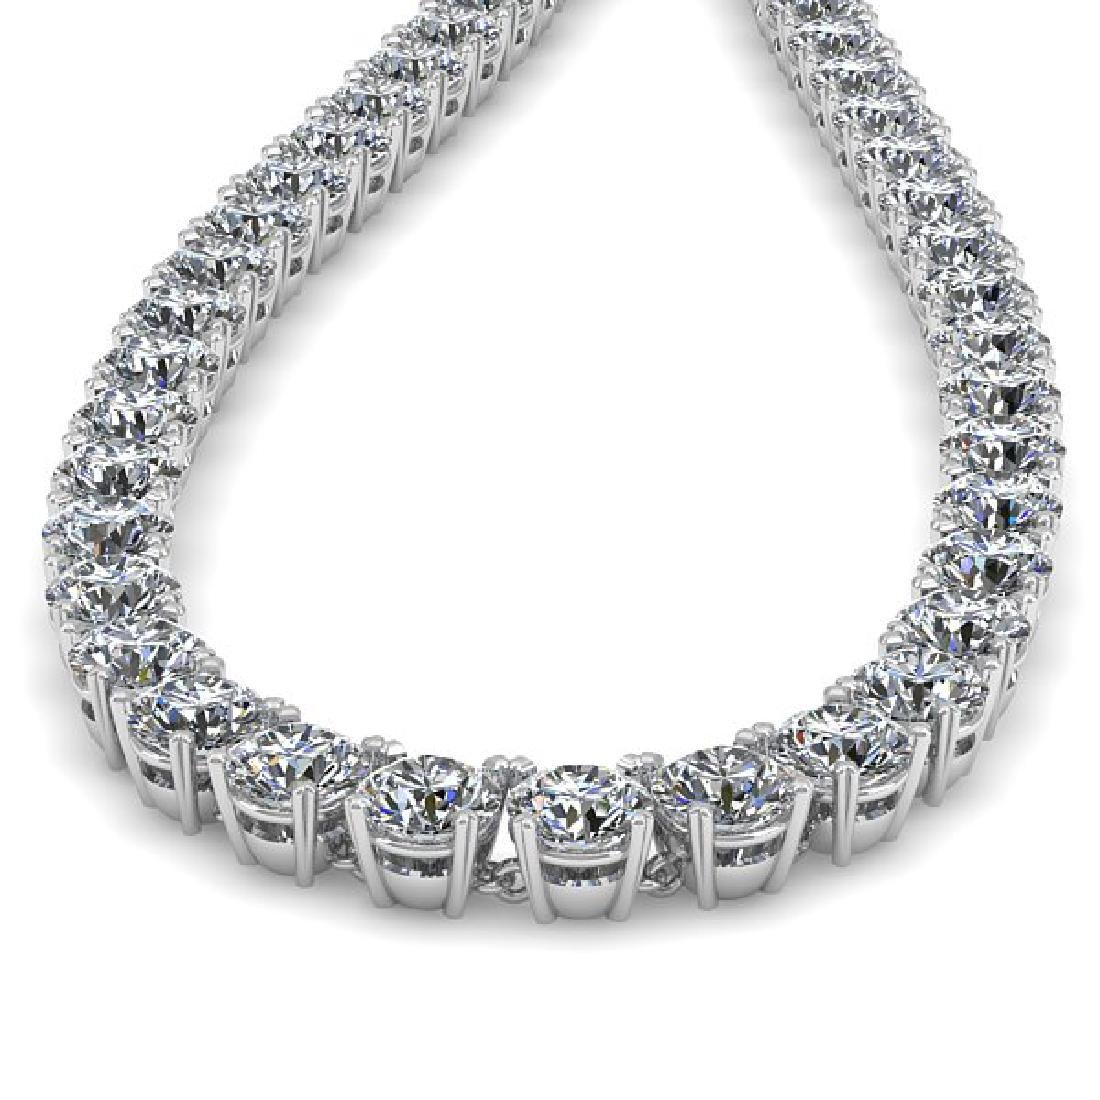 30 CTW Certified SI Diamond Necklace 14K White Gold - 2